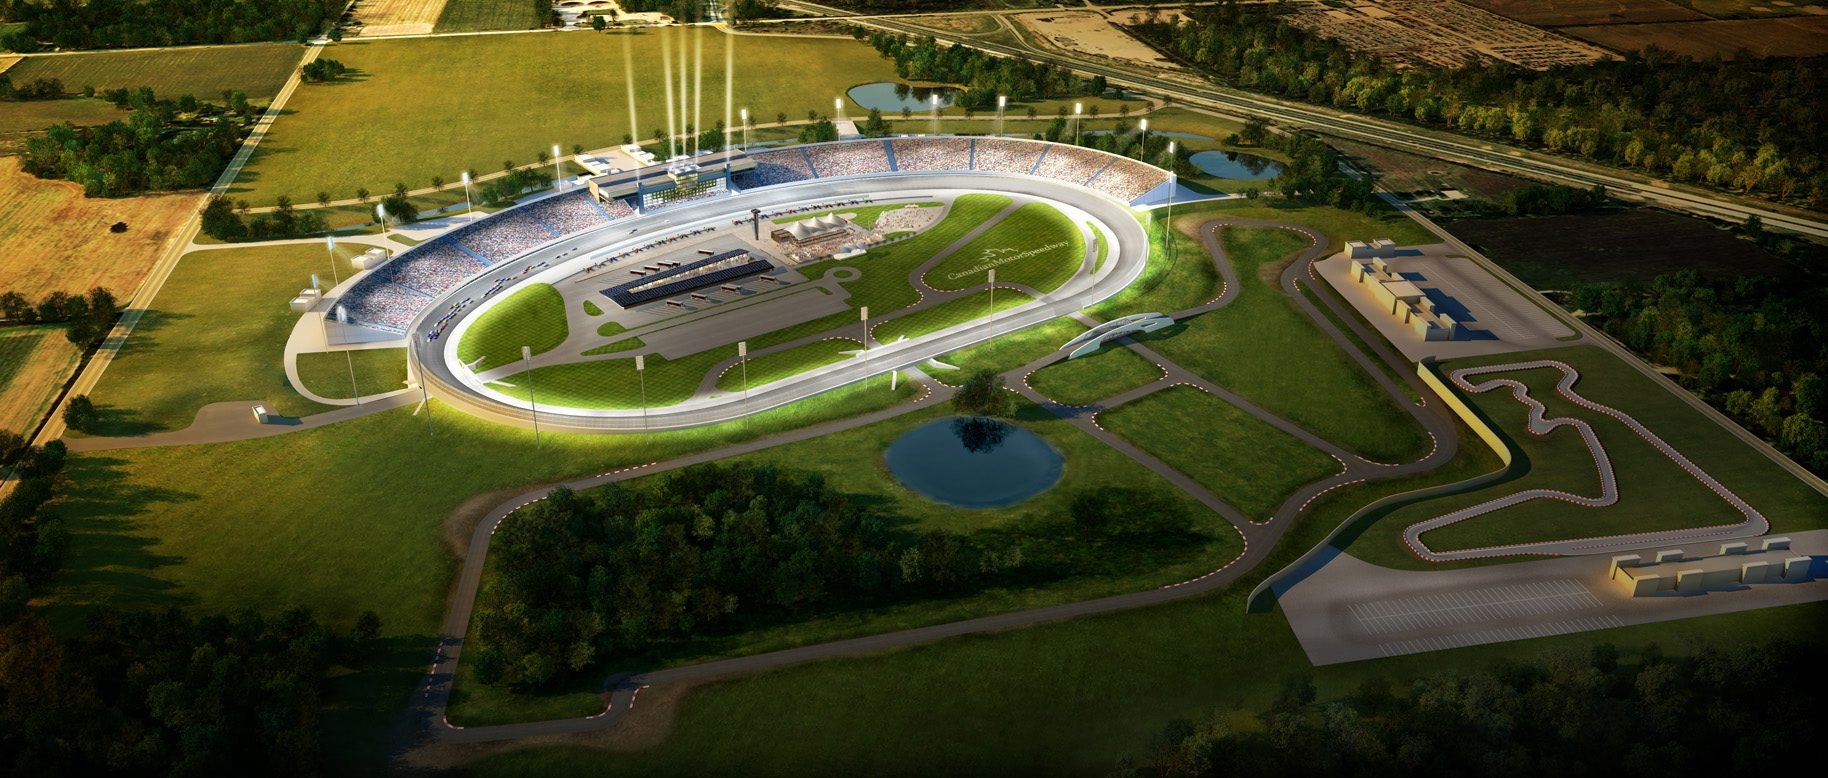 The proposed Canadian Motor Speedway is being built just two minutes from the international border and 20 minutes from Niagara Falls.